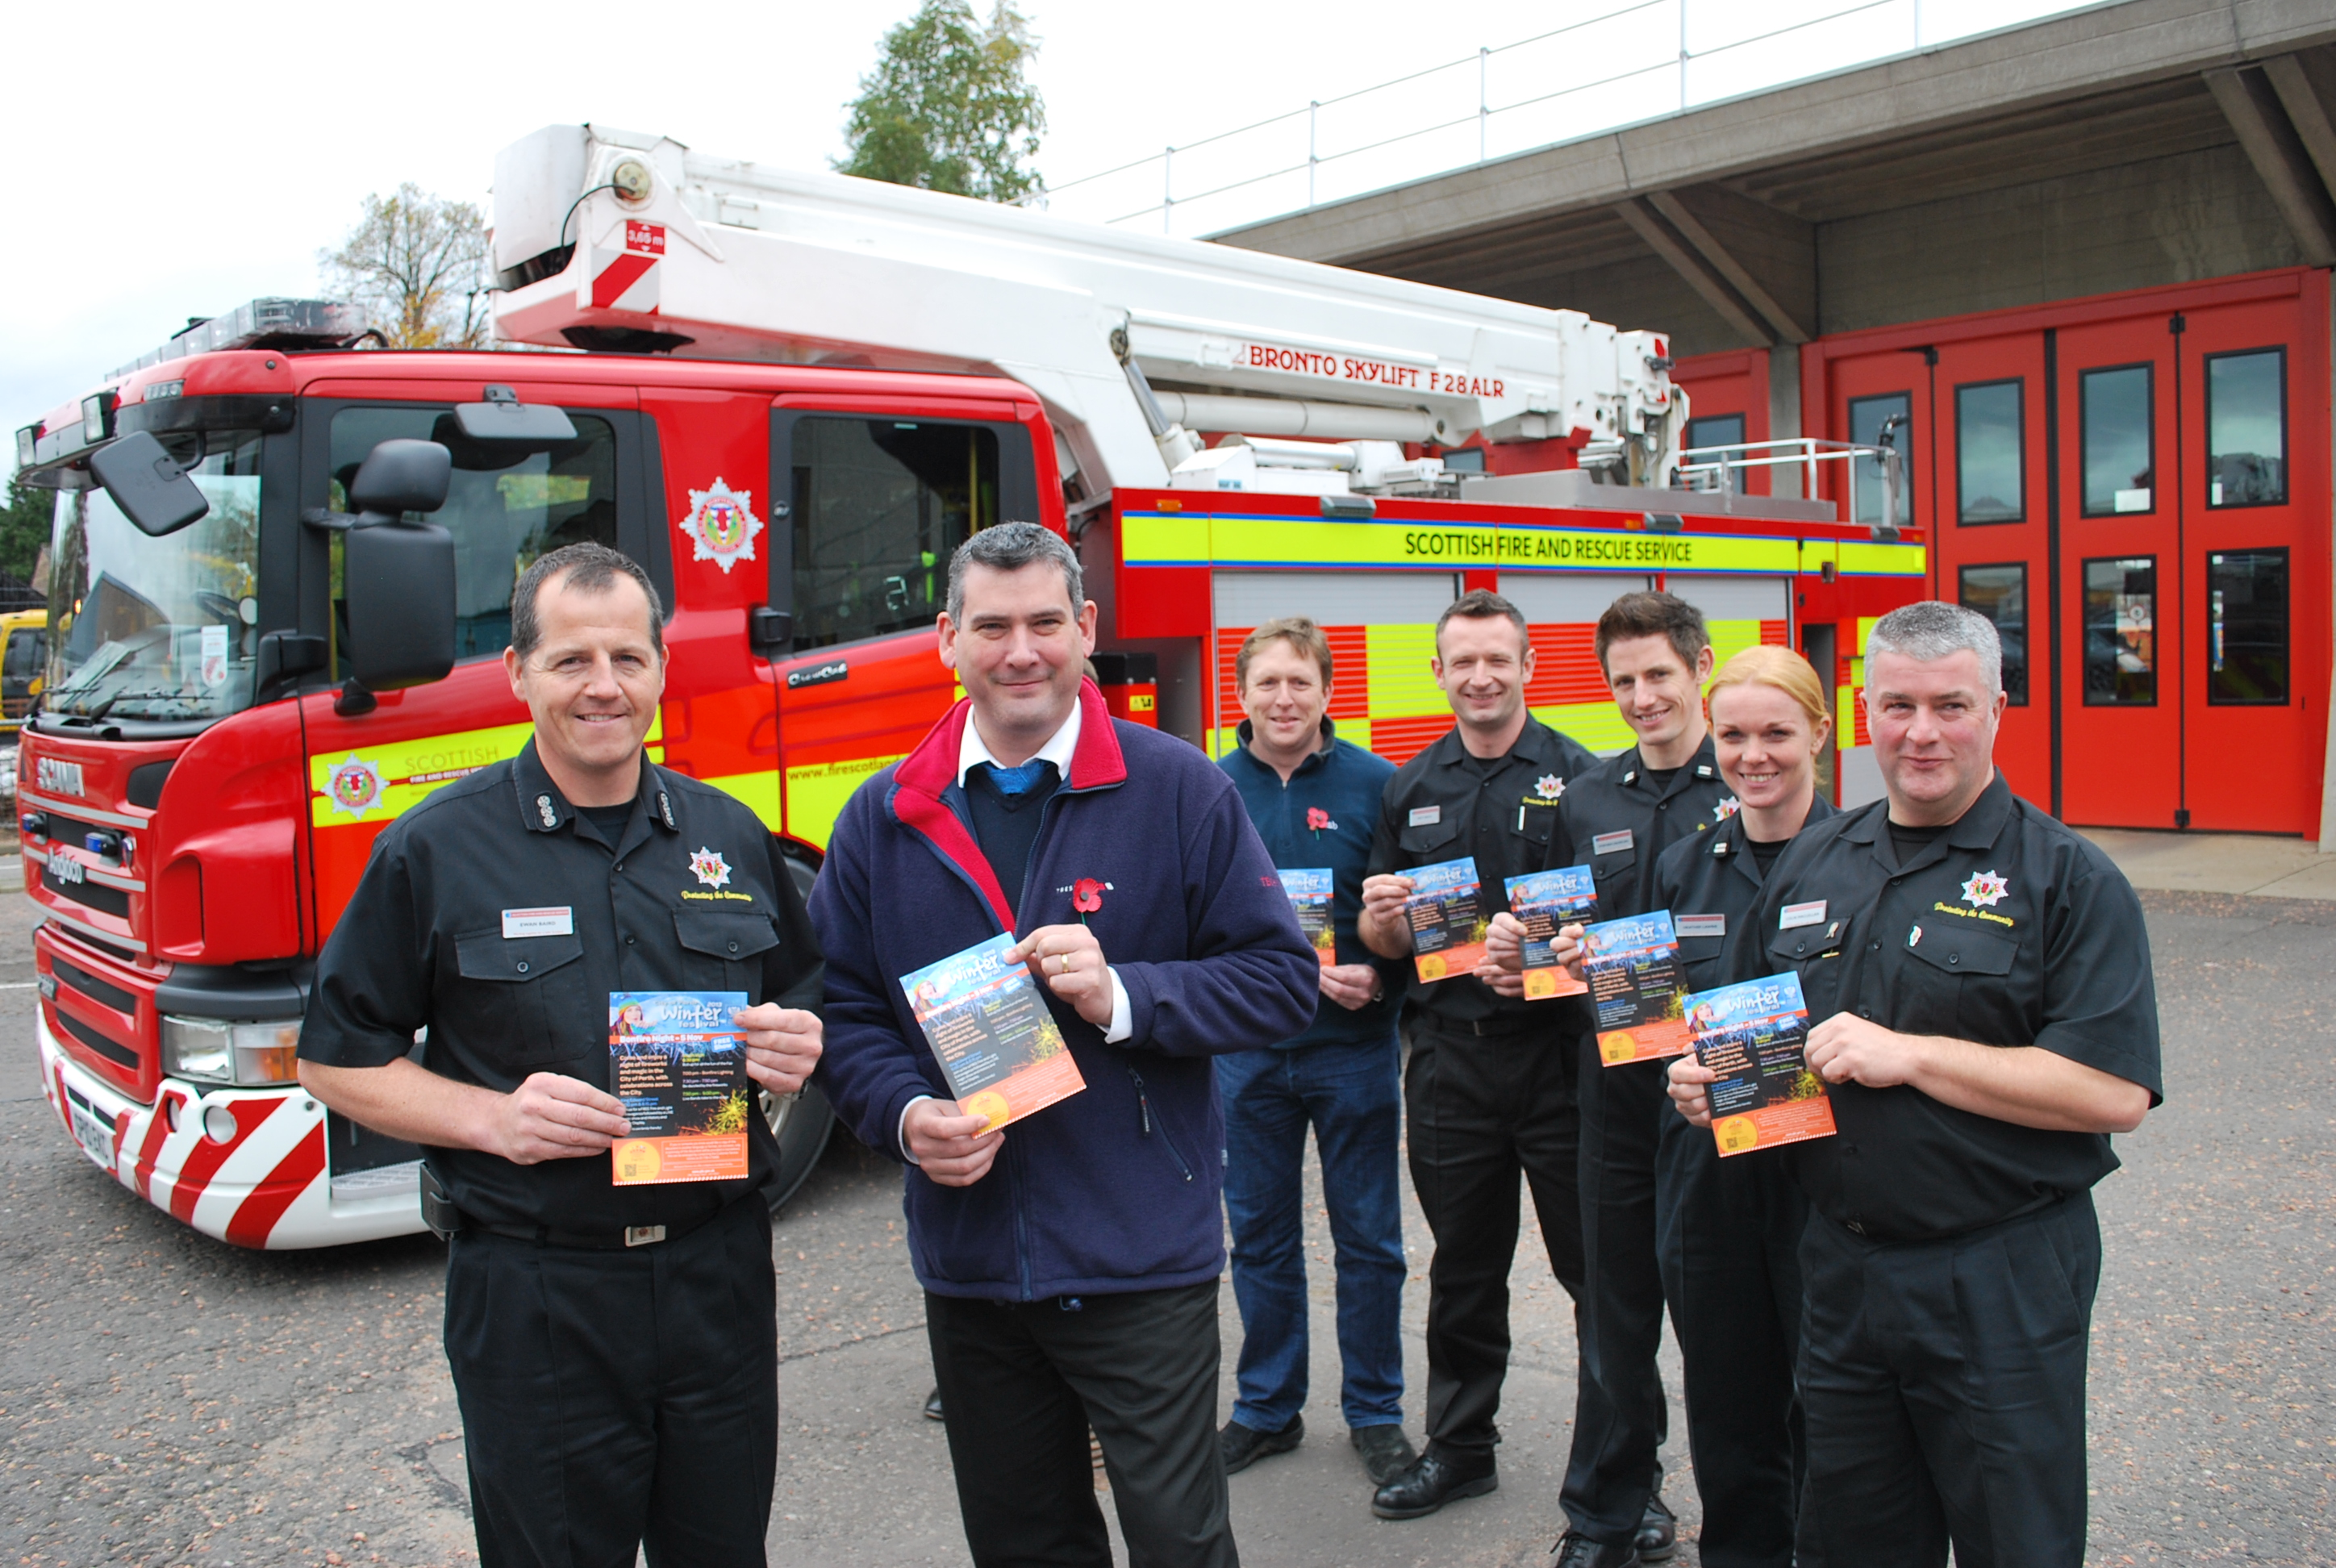 SFRS join forces with Perth and Kinross round table to encourage public to attend organised bonfire events